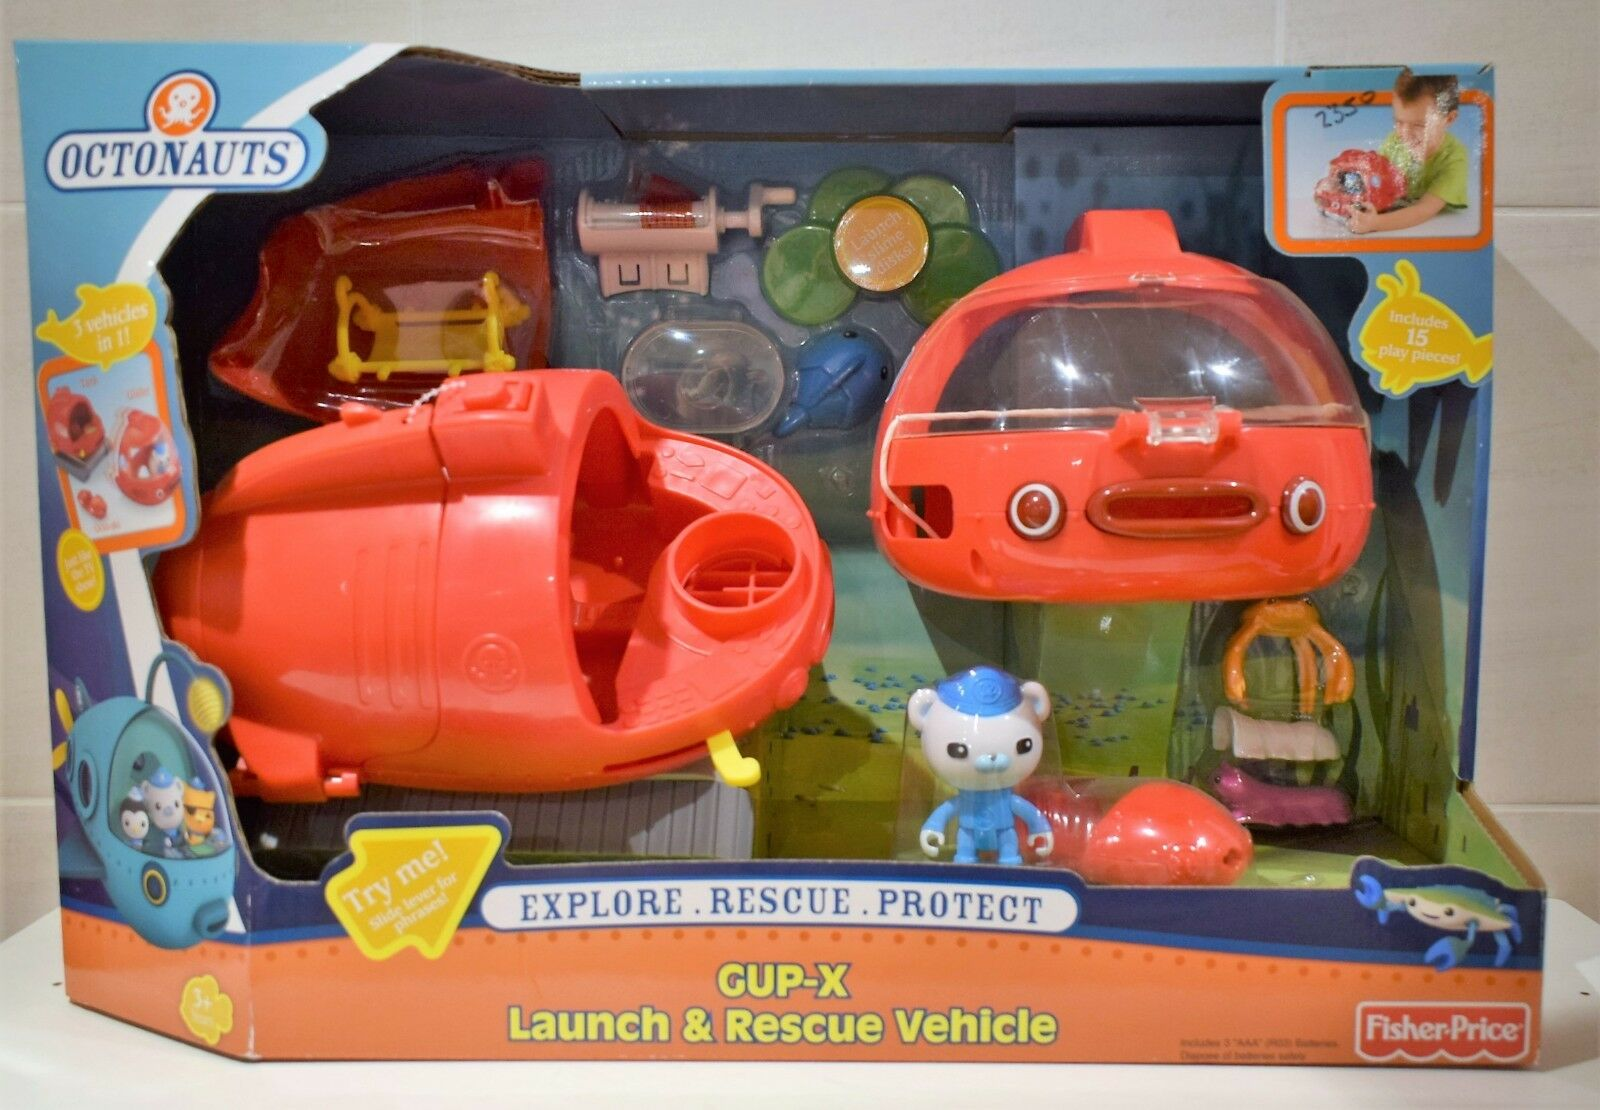 OCTONAUTS GUP-1 POLAR OCTO-LAB OCTO-LAB OCTO-LAB GUP-S POLAR EXPLORATION Or GUP-X RESCUE VEHICLE 567427